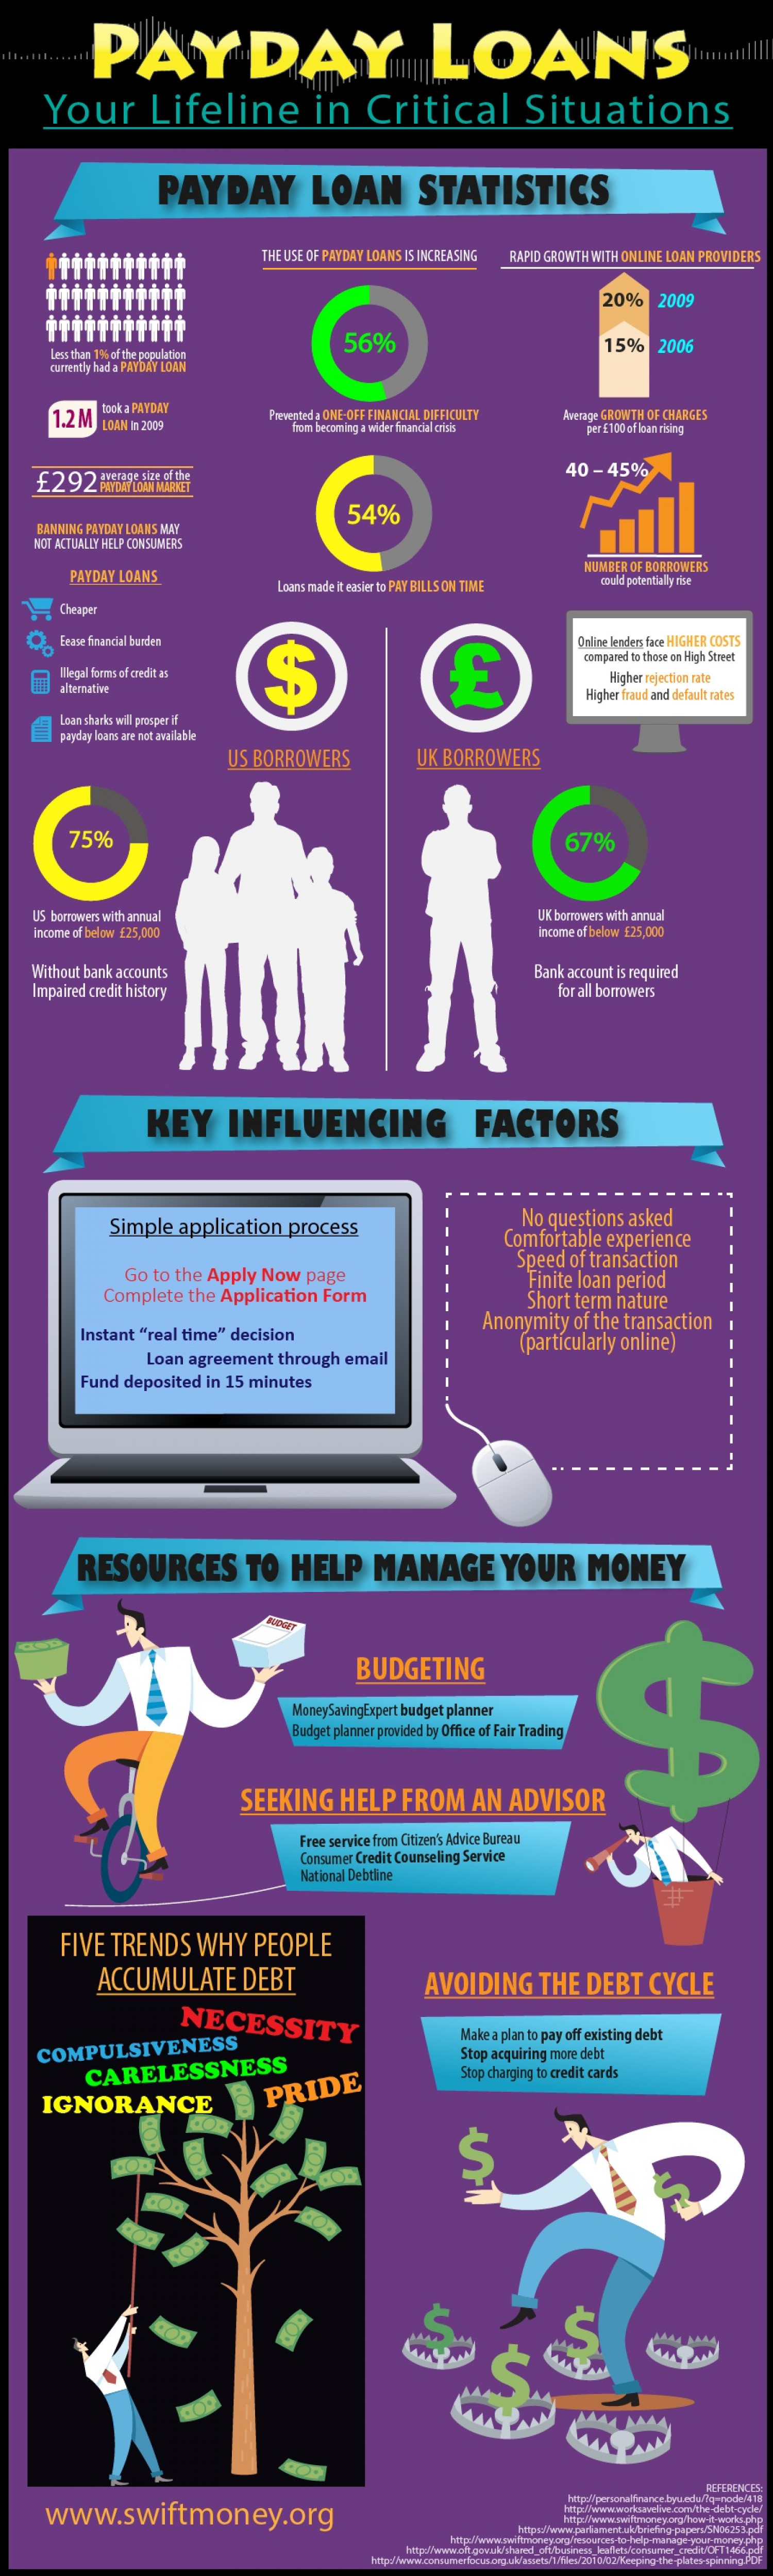 Payday Loans: Your Lifeline in Critical Situations Infographic